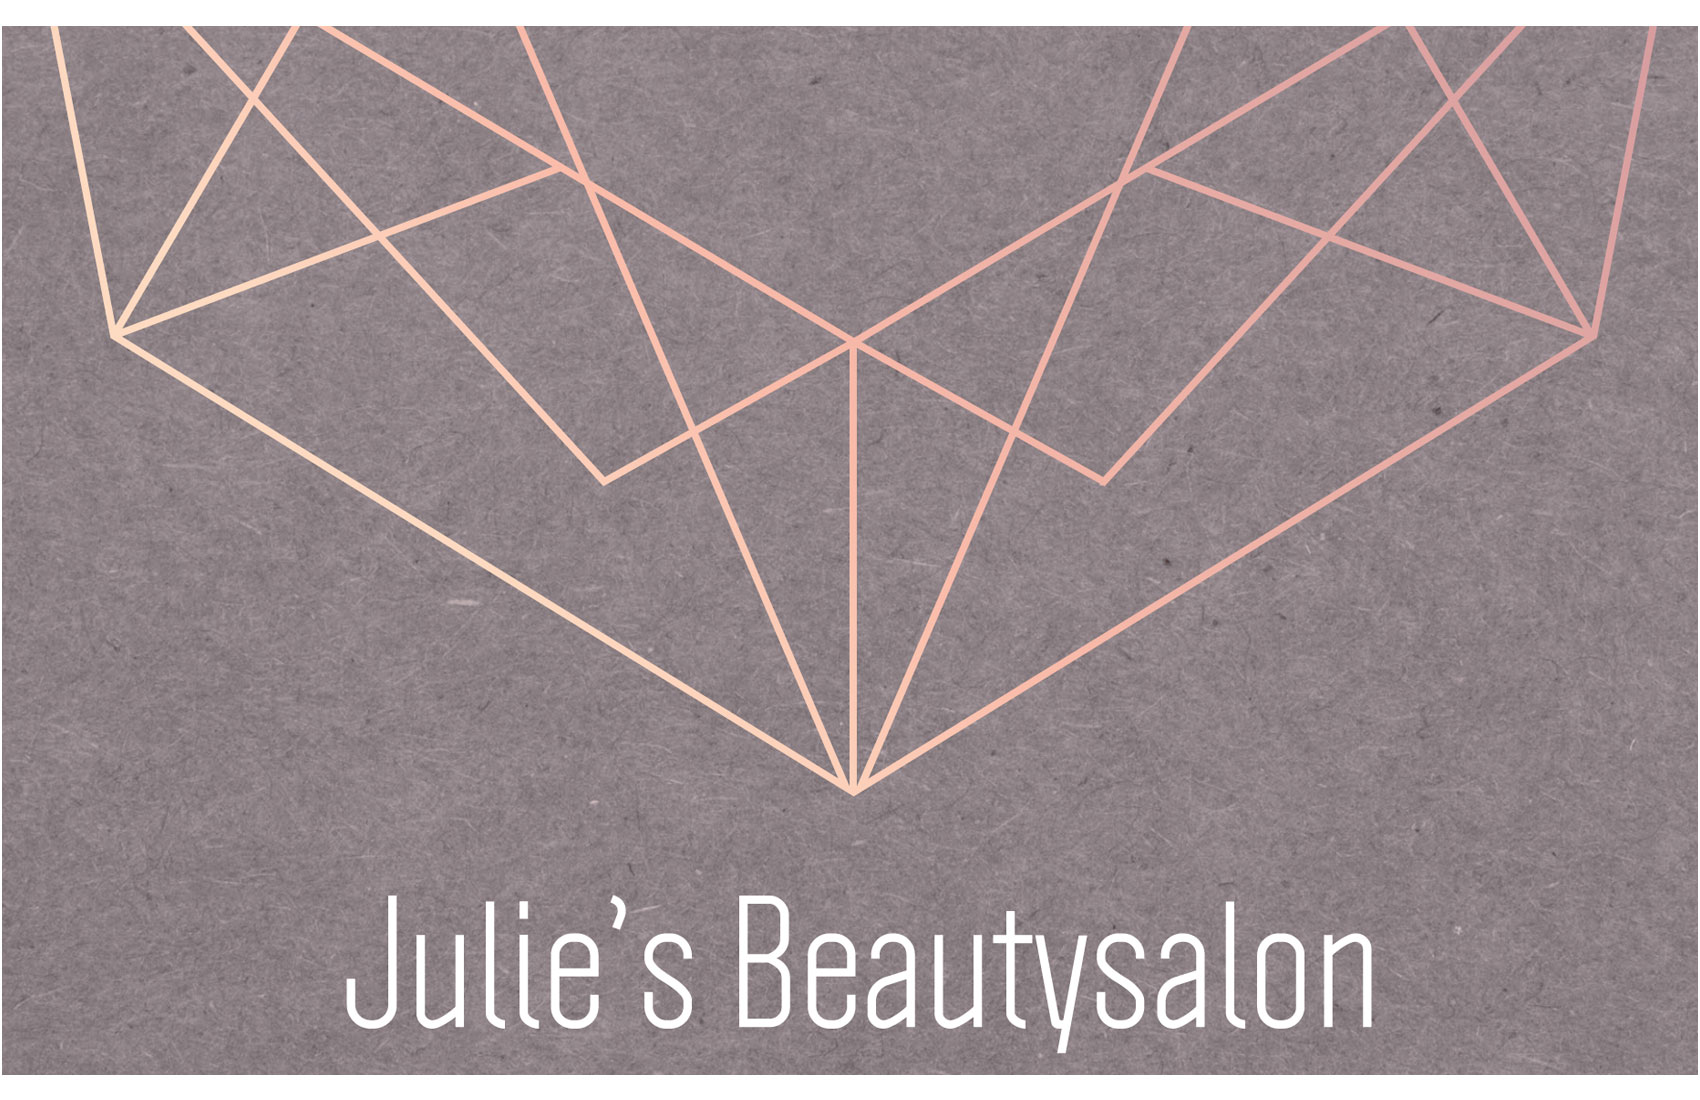 Julie's Beautysalon